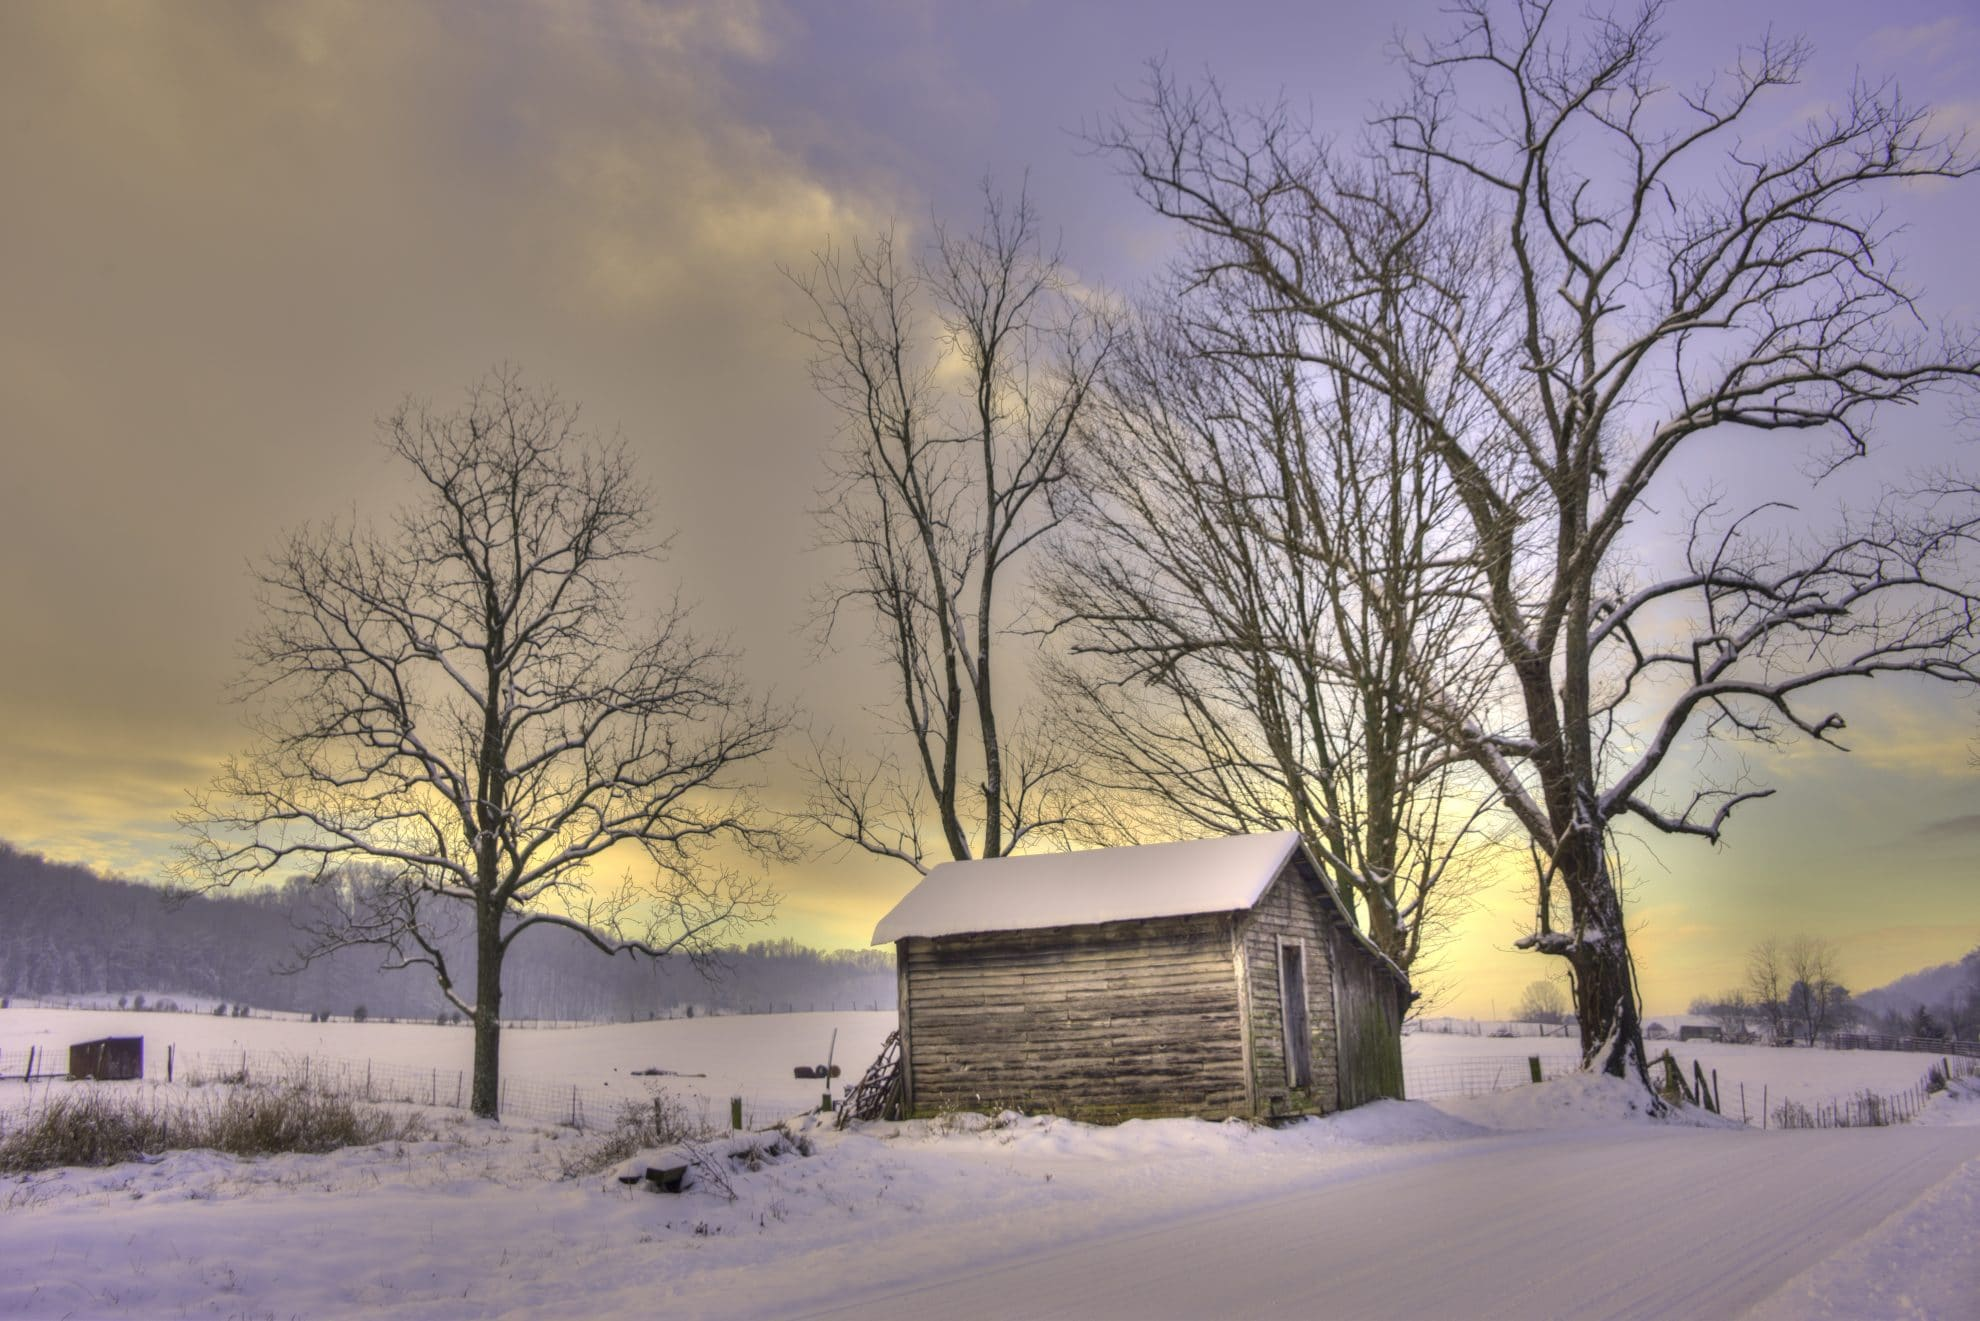 a snowy rural setting landscape print with wooden shed and sunset sky